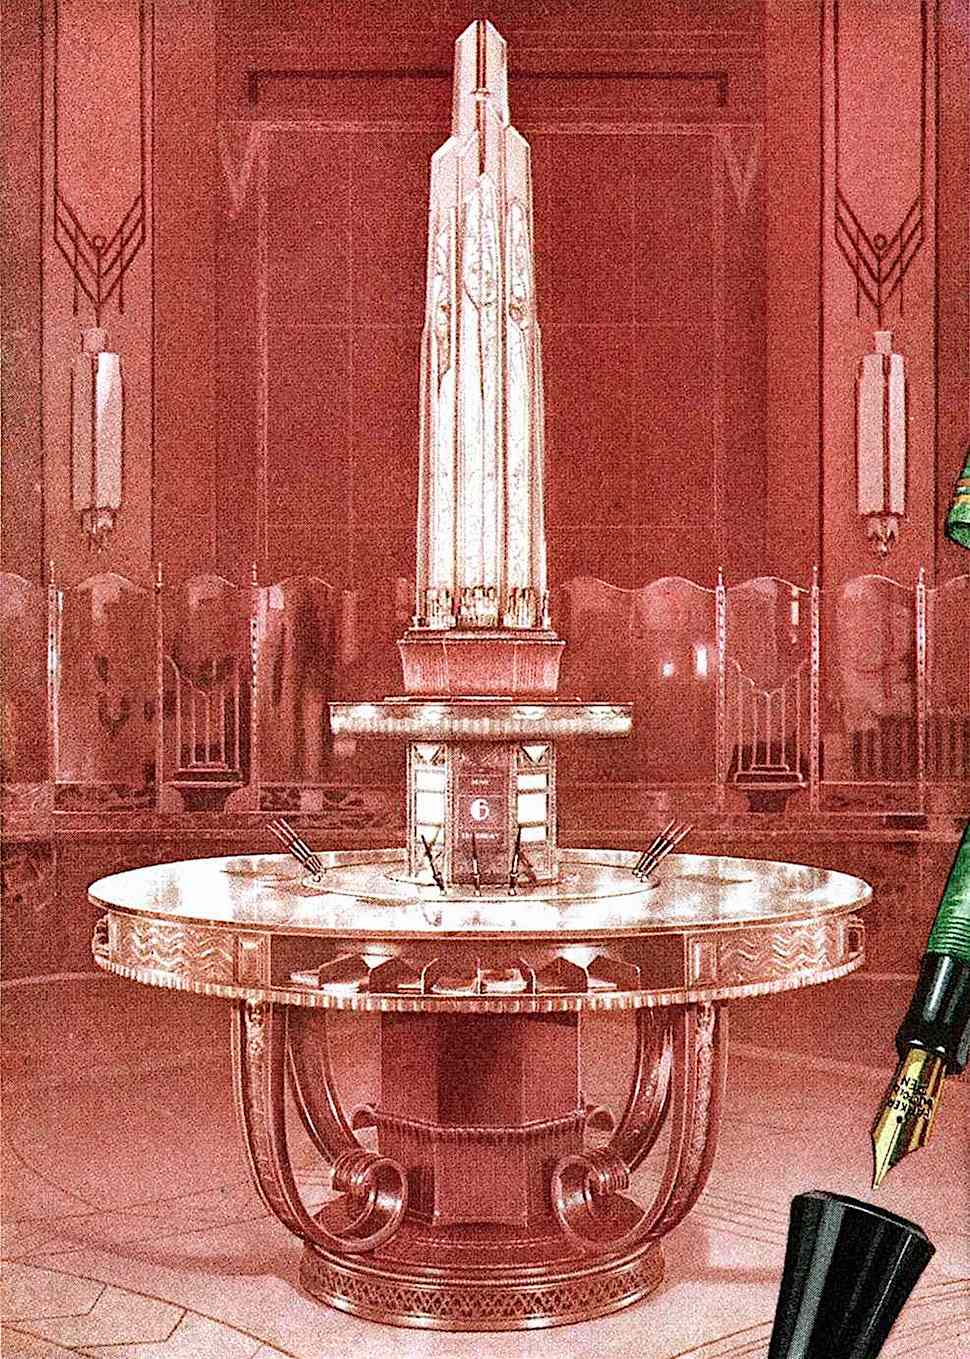 a 1930 bank island in an art deco illustration